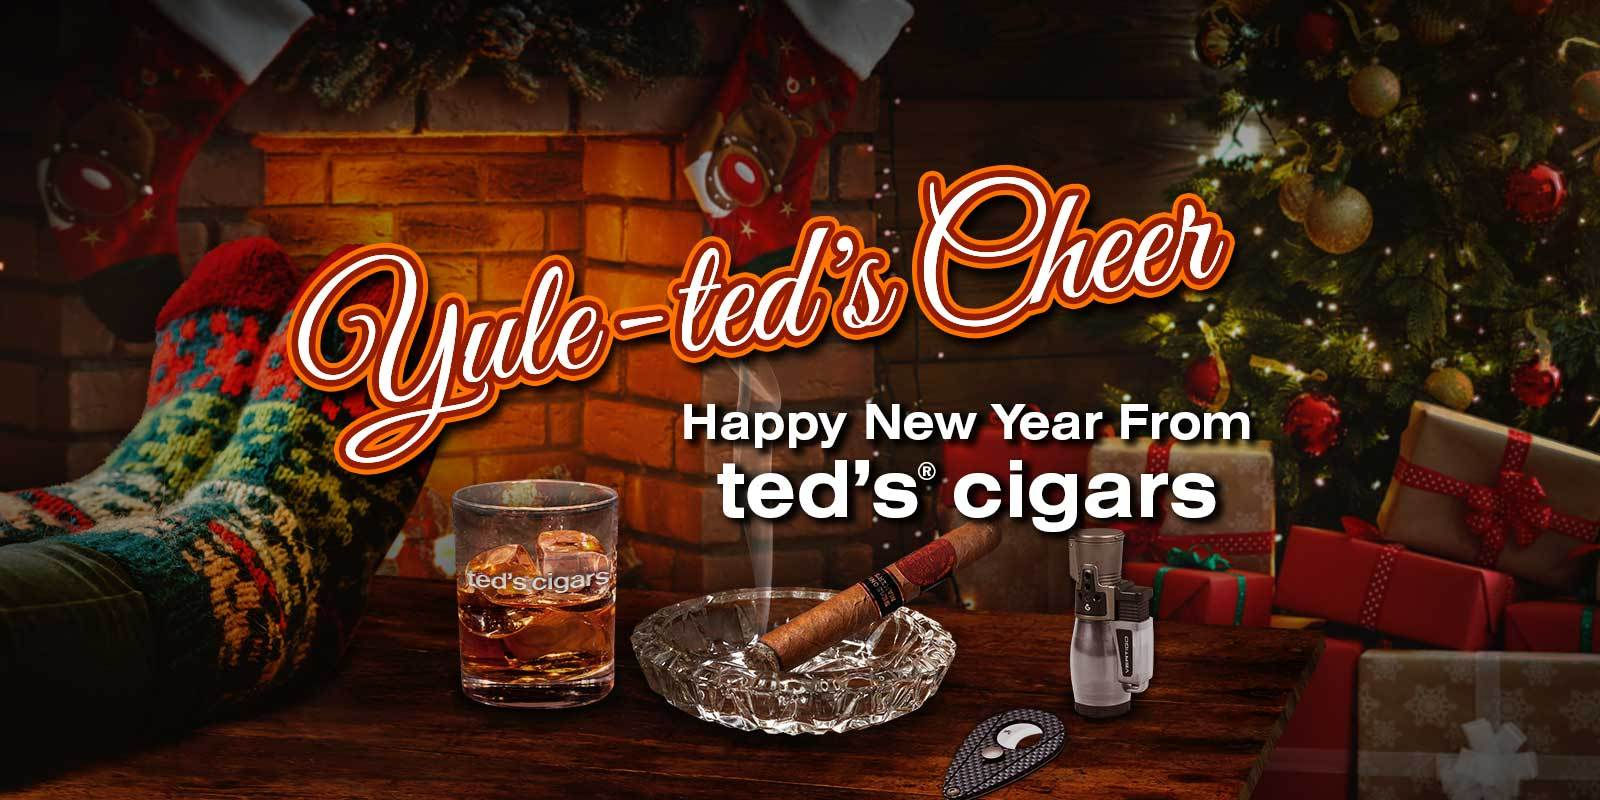 Yule-ted's Cheer